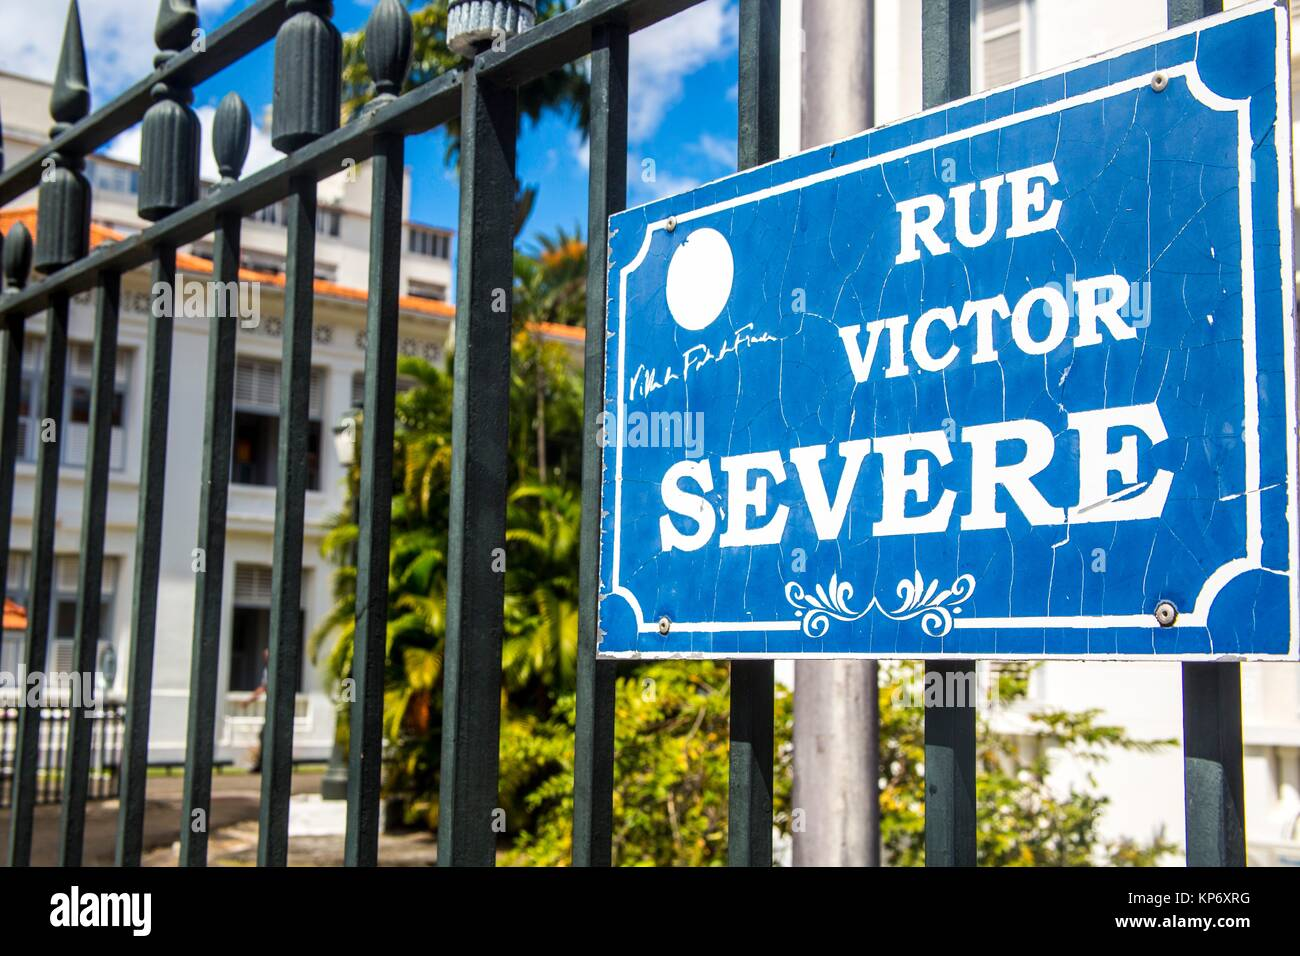 Street Sign of the famous Rue Victor Severe in Fort de France, Martinique. - Stock Image